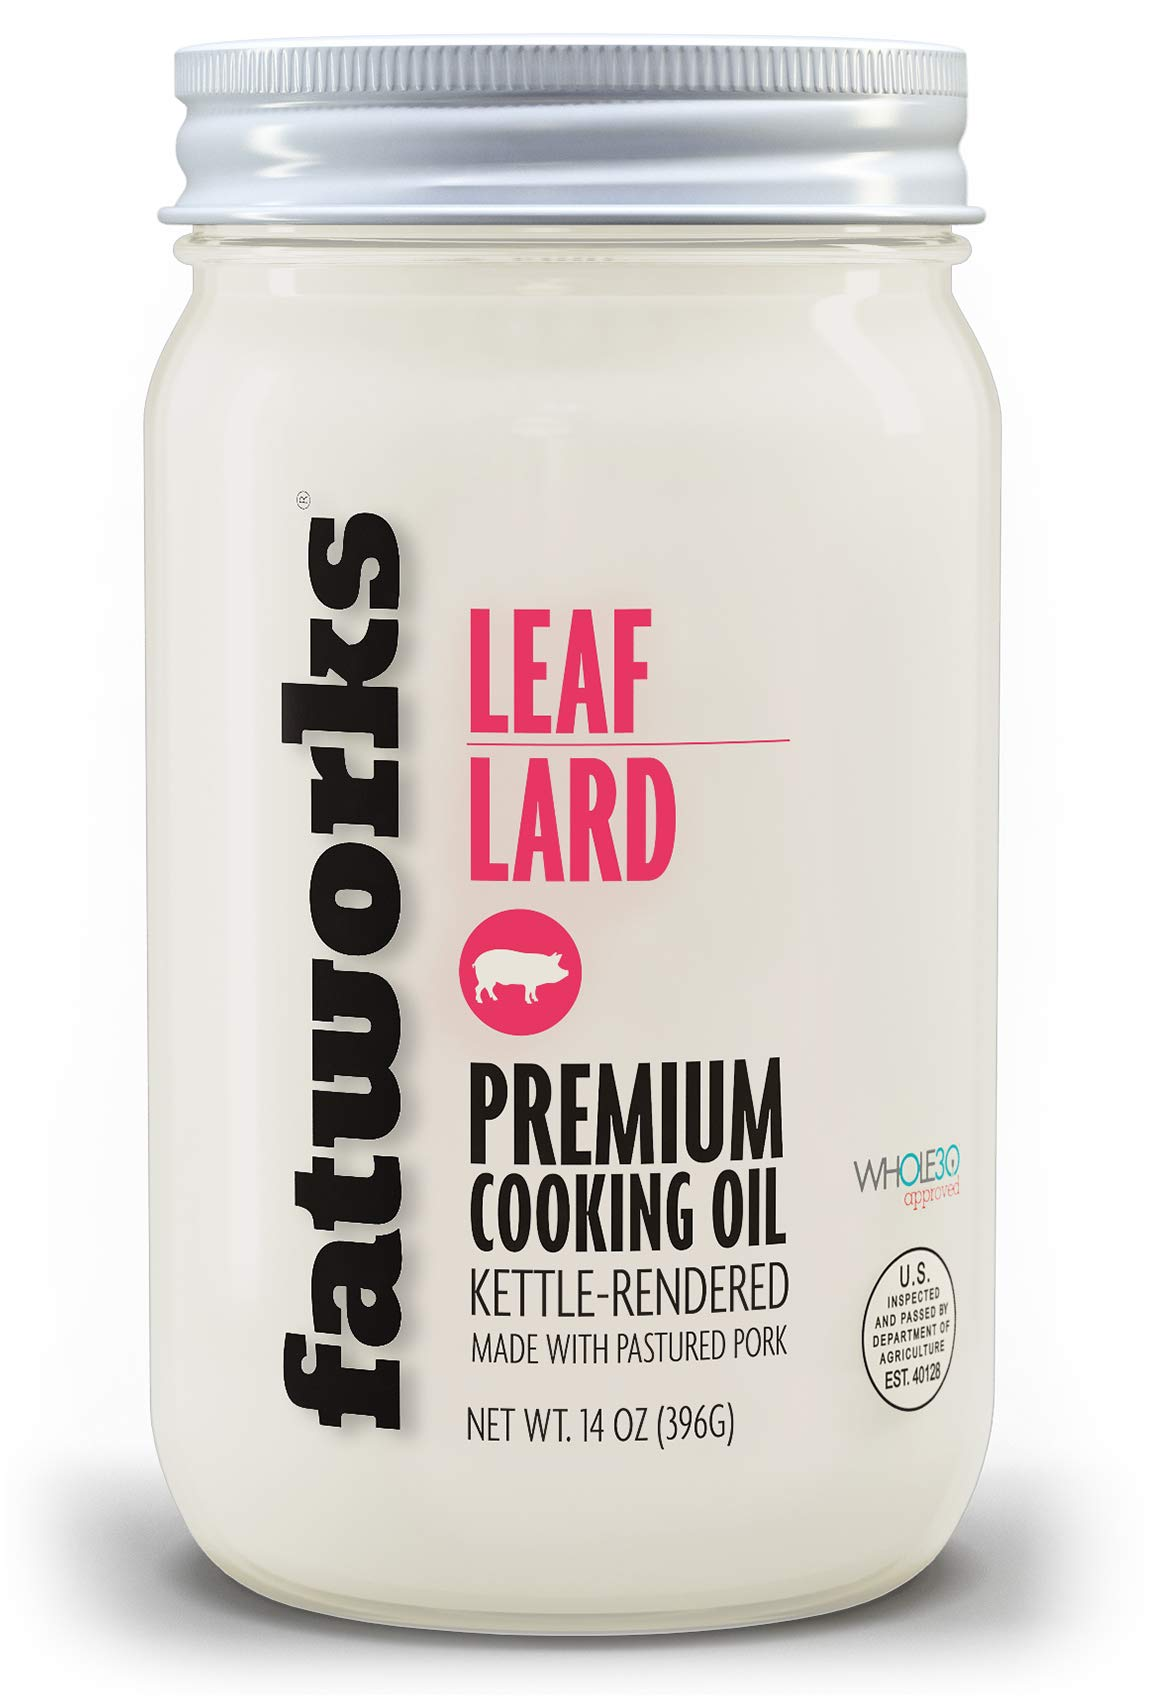 """Fatworks, Pasture Raised Leaf Lard, a.k.a. """"Baker's Lard"""", Artisanally Rendered, for Traditional & Gourmet Baking, Sauteeing, Frying, WHOLE30 APPROVED, KETO, PALEO,14 oz."""